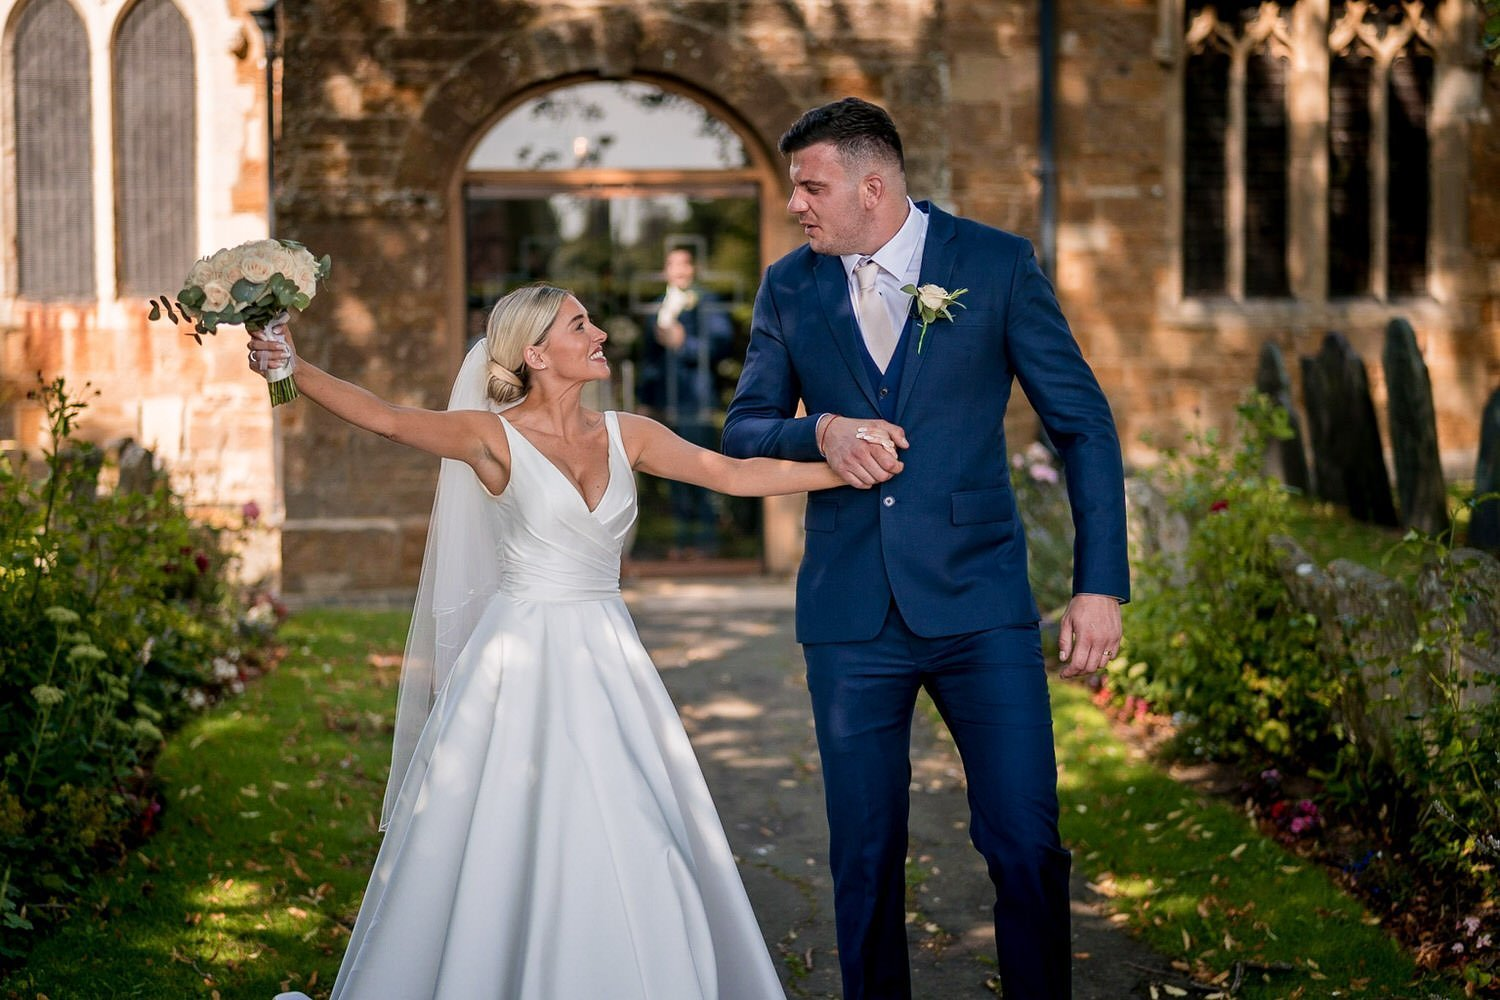 Great Bowden Parish Church Lockwood Weddings Photography bride and groom outside the church bride raising her bouquet in celebration and happiness